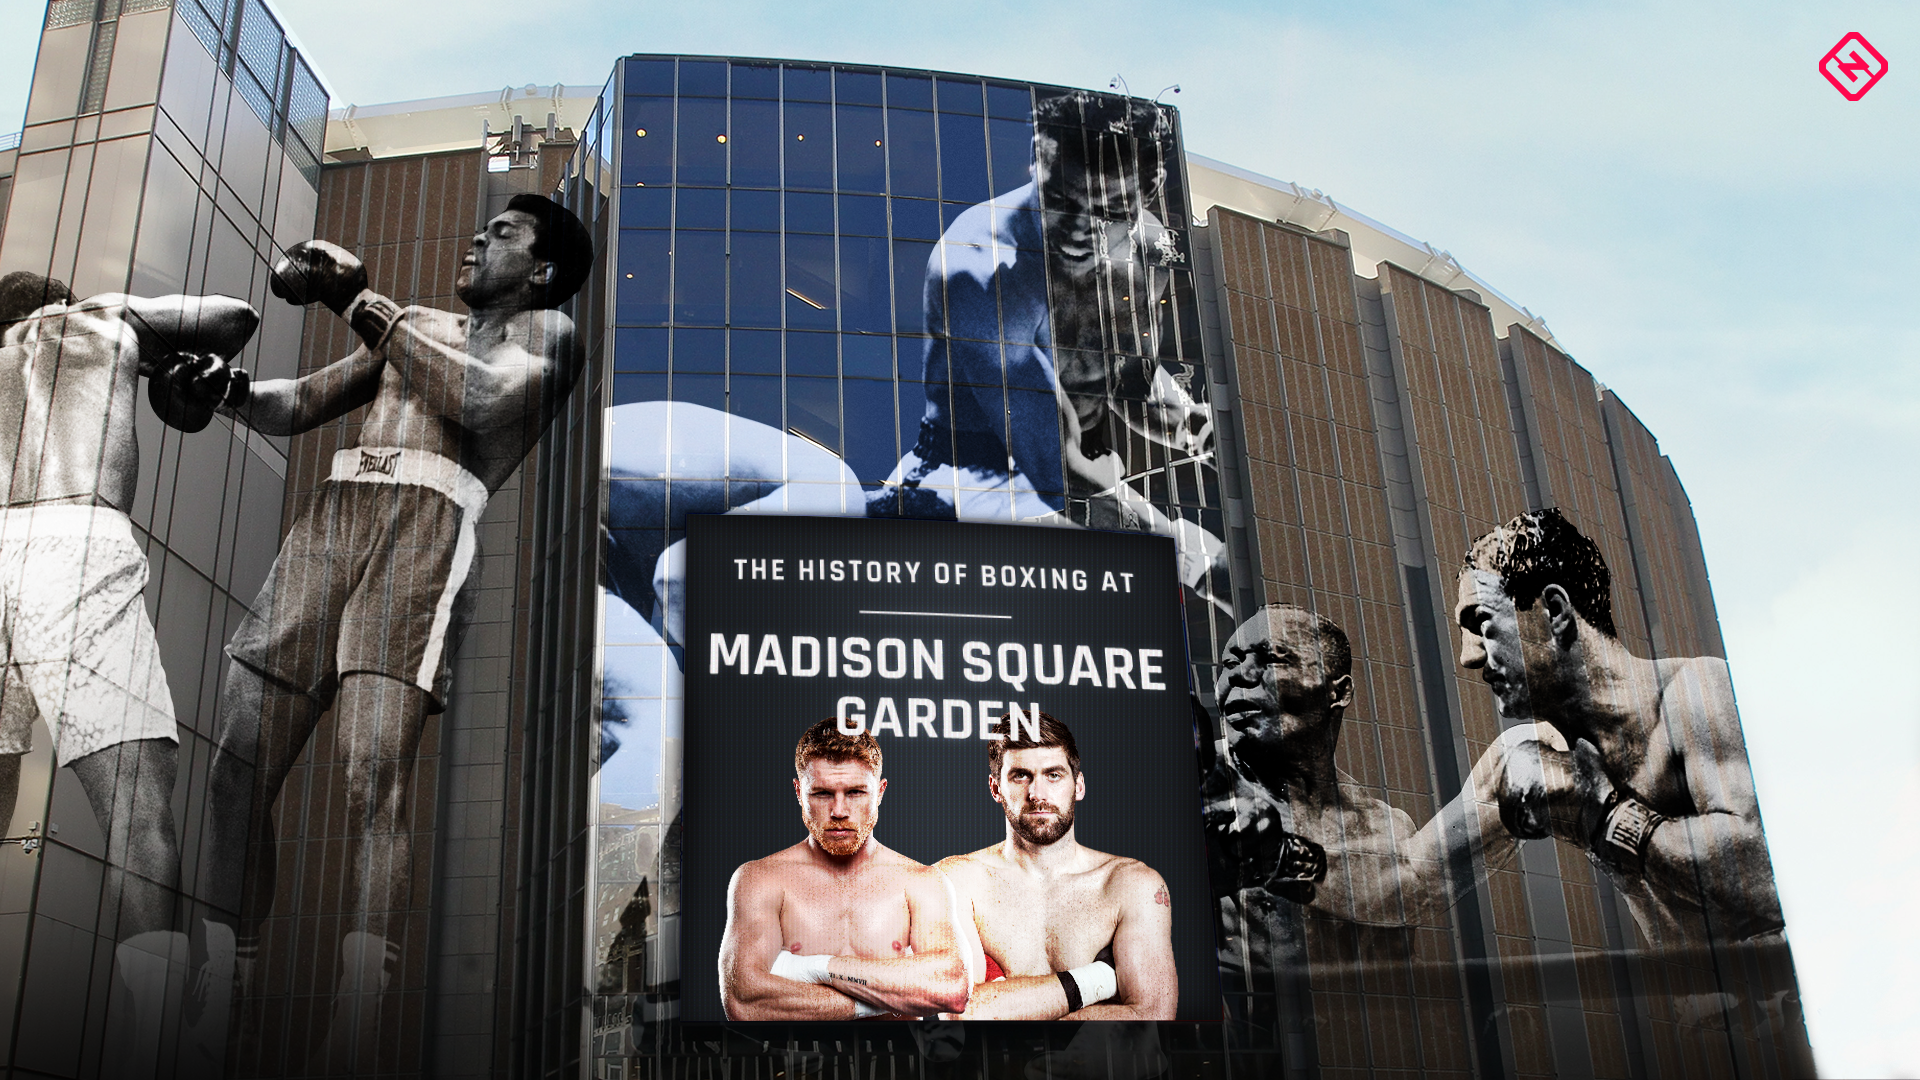 The history of boxing at madison square garden boxing - History of madison square garden ...